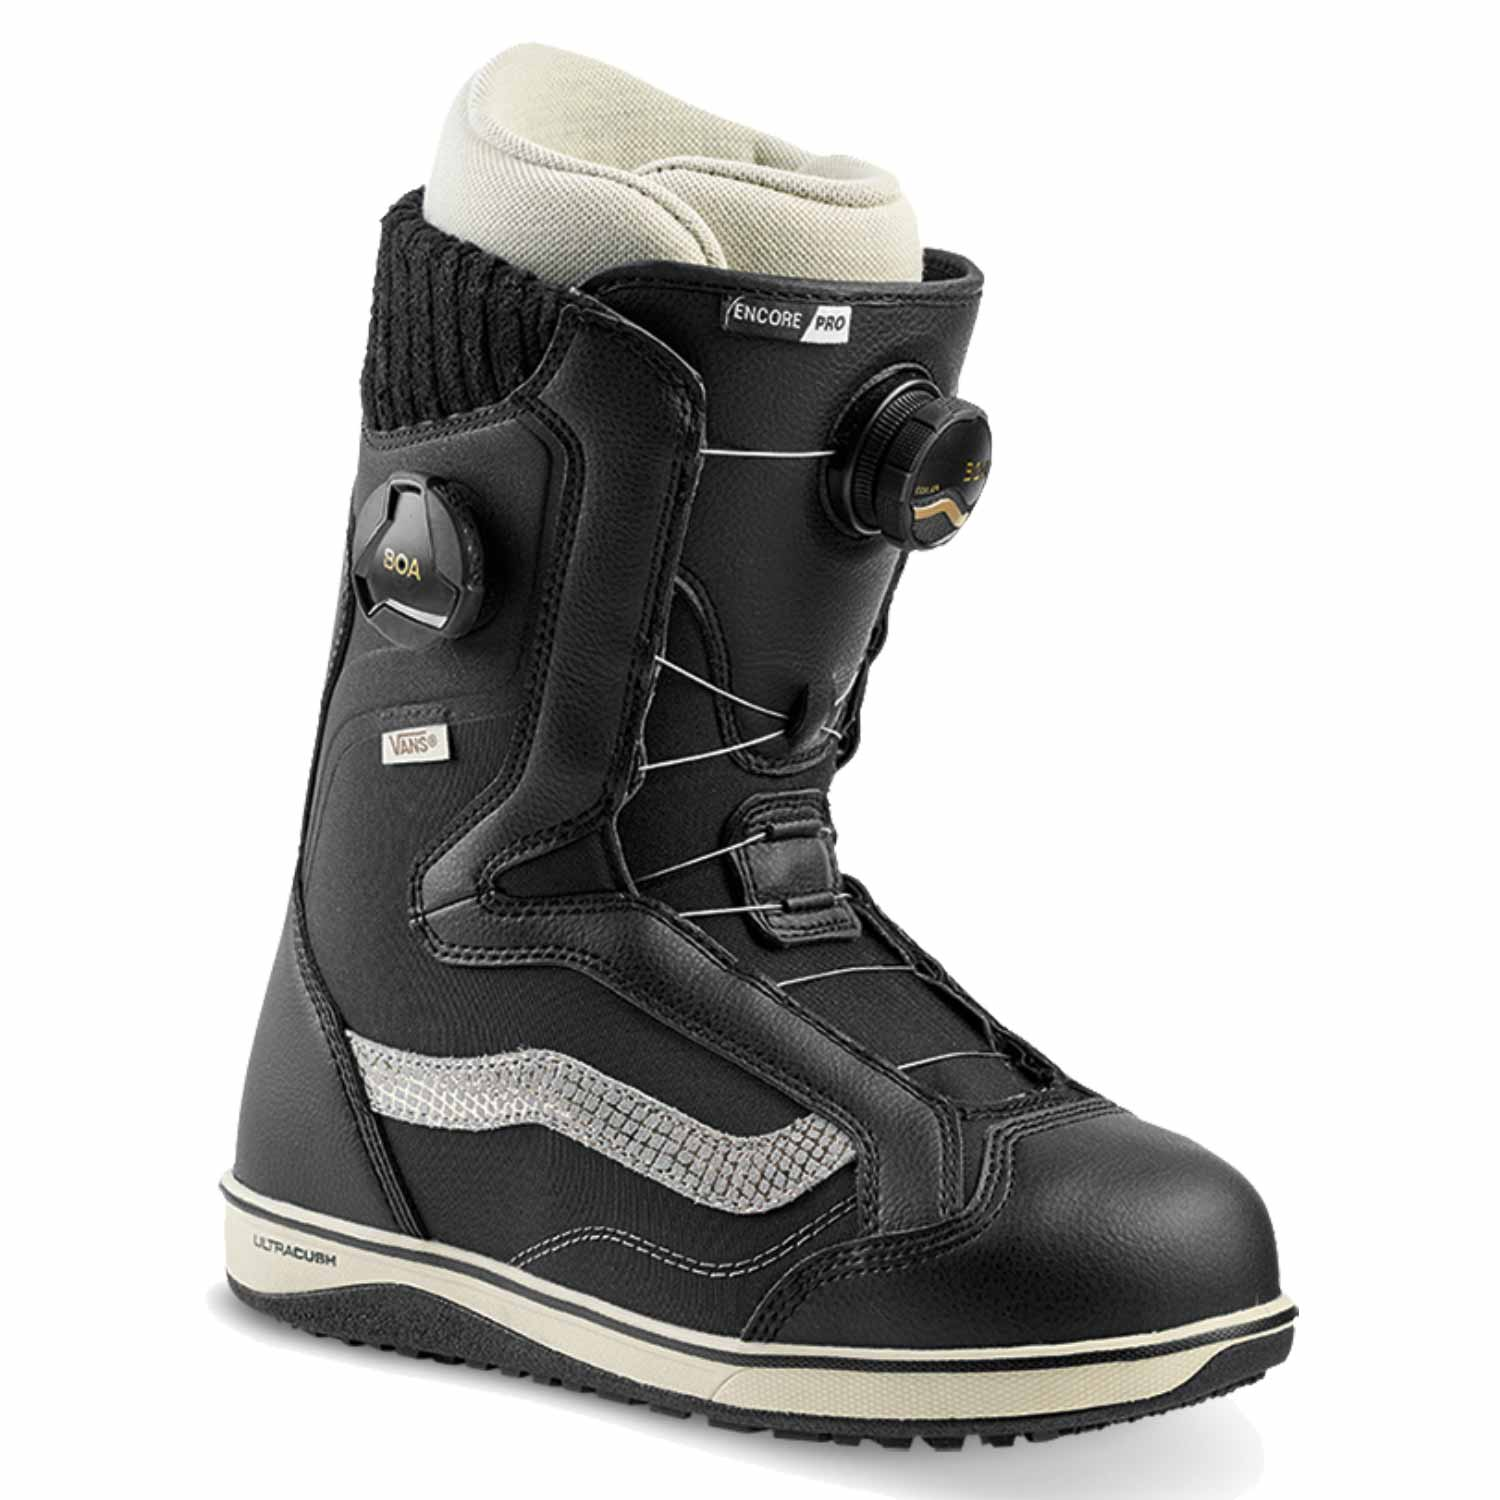 Vans Encore Pro Snowboard Boot Black/Turtledove 2020